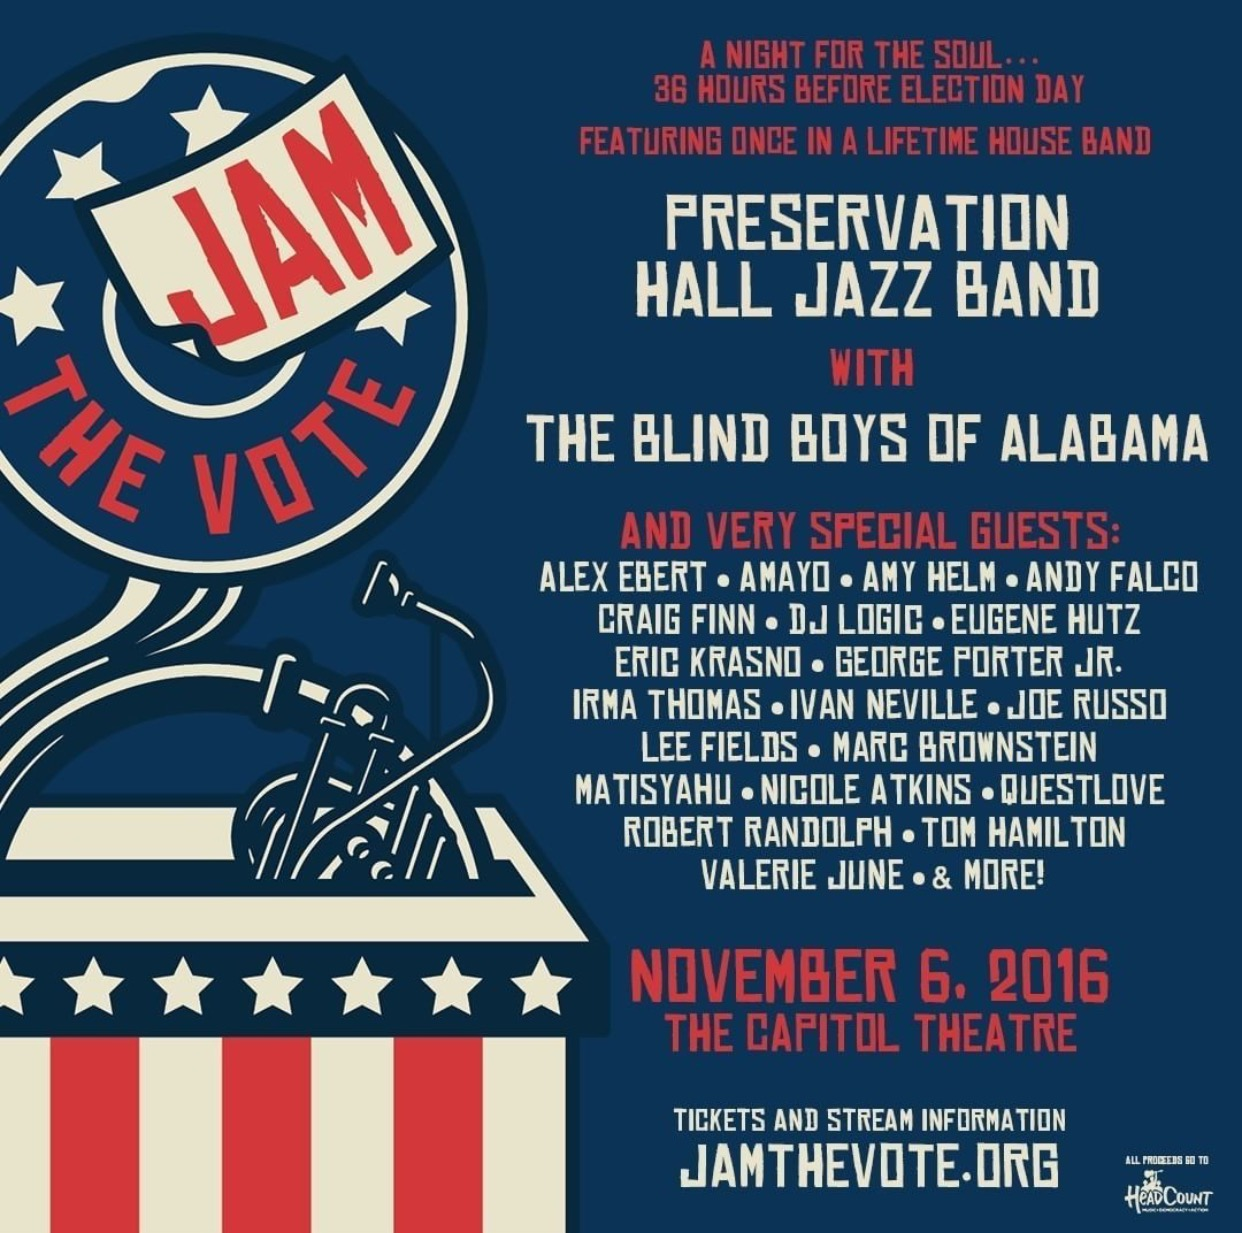 The Preservation Hall Jazz Band Honored To Be The House Band For